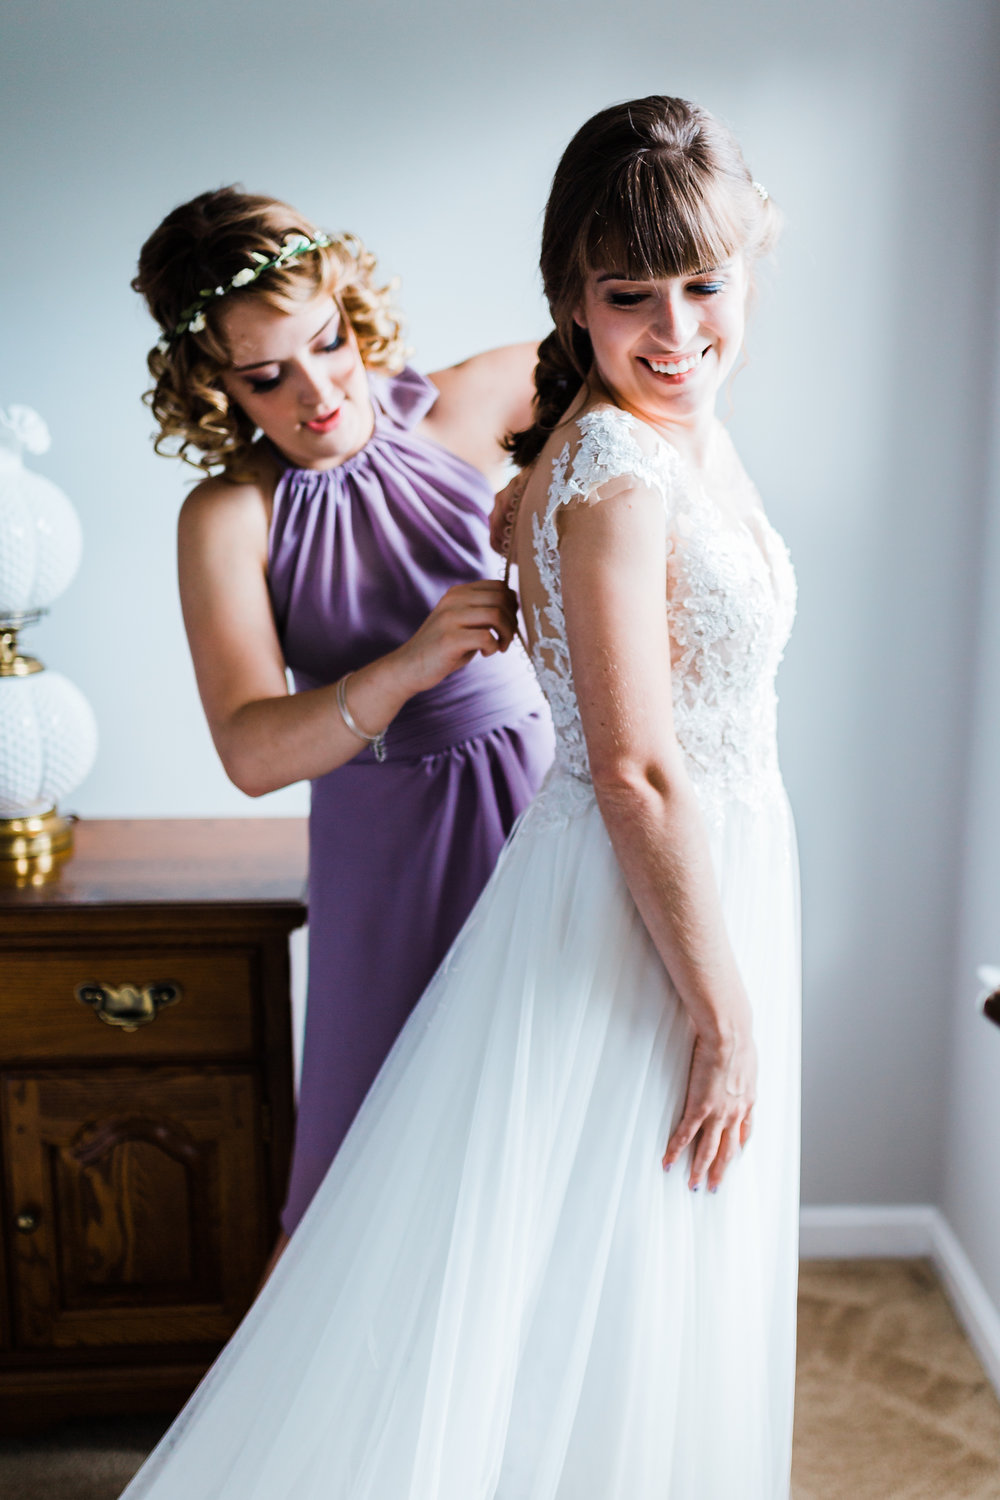 bride getting her dress on with her maid of honor - md wedding photographer